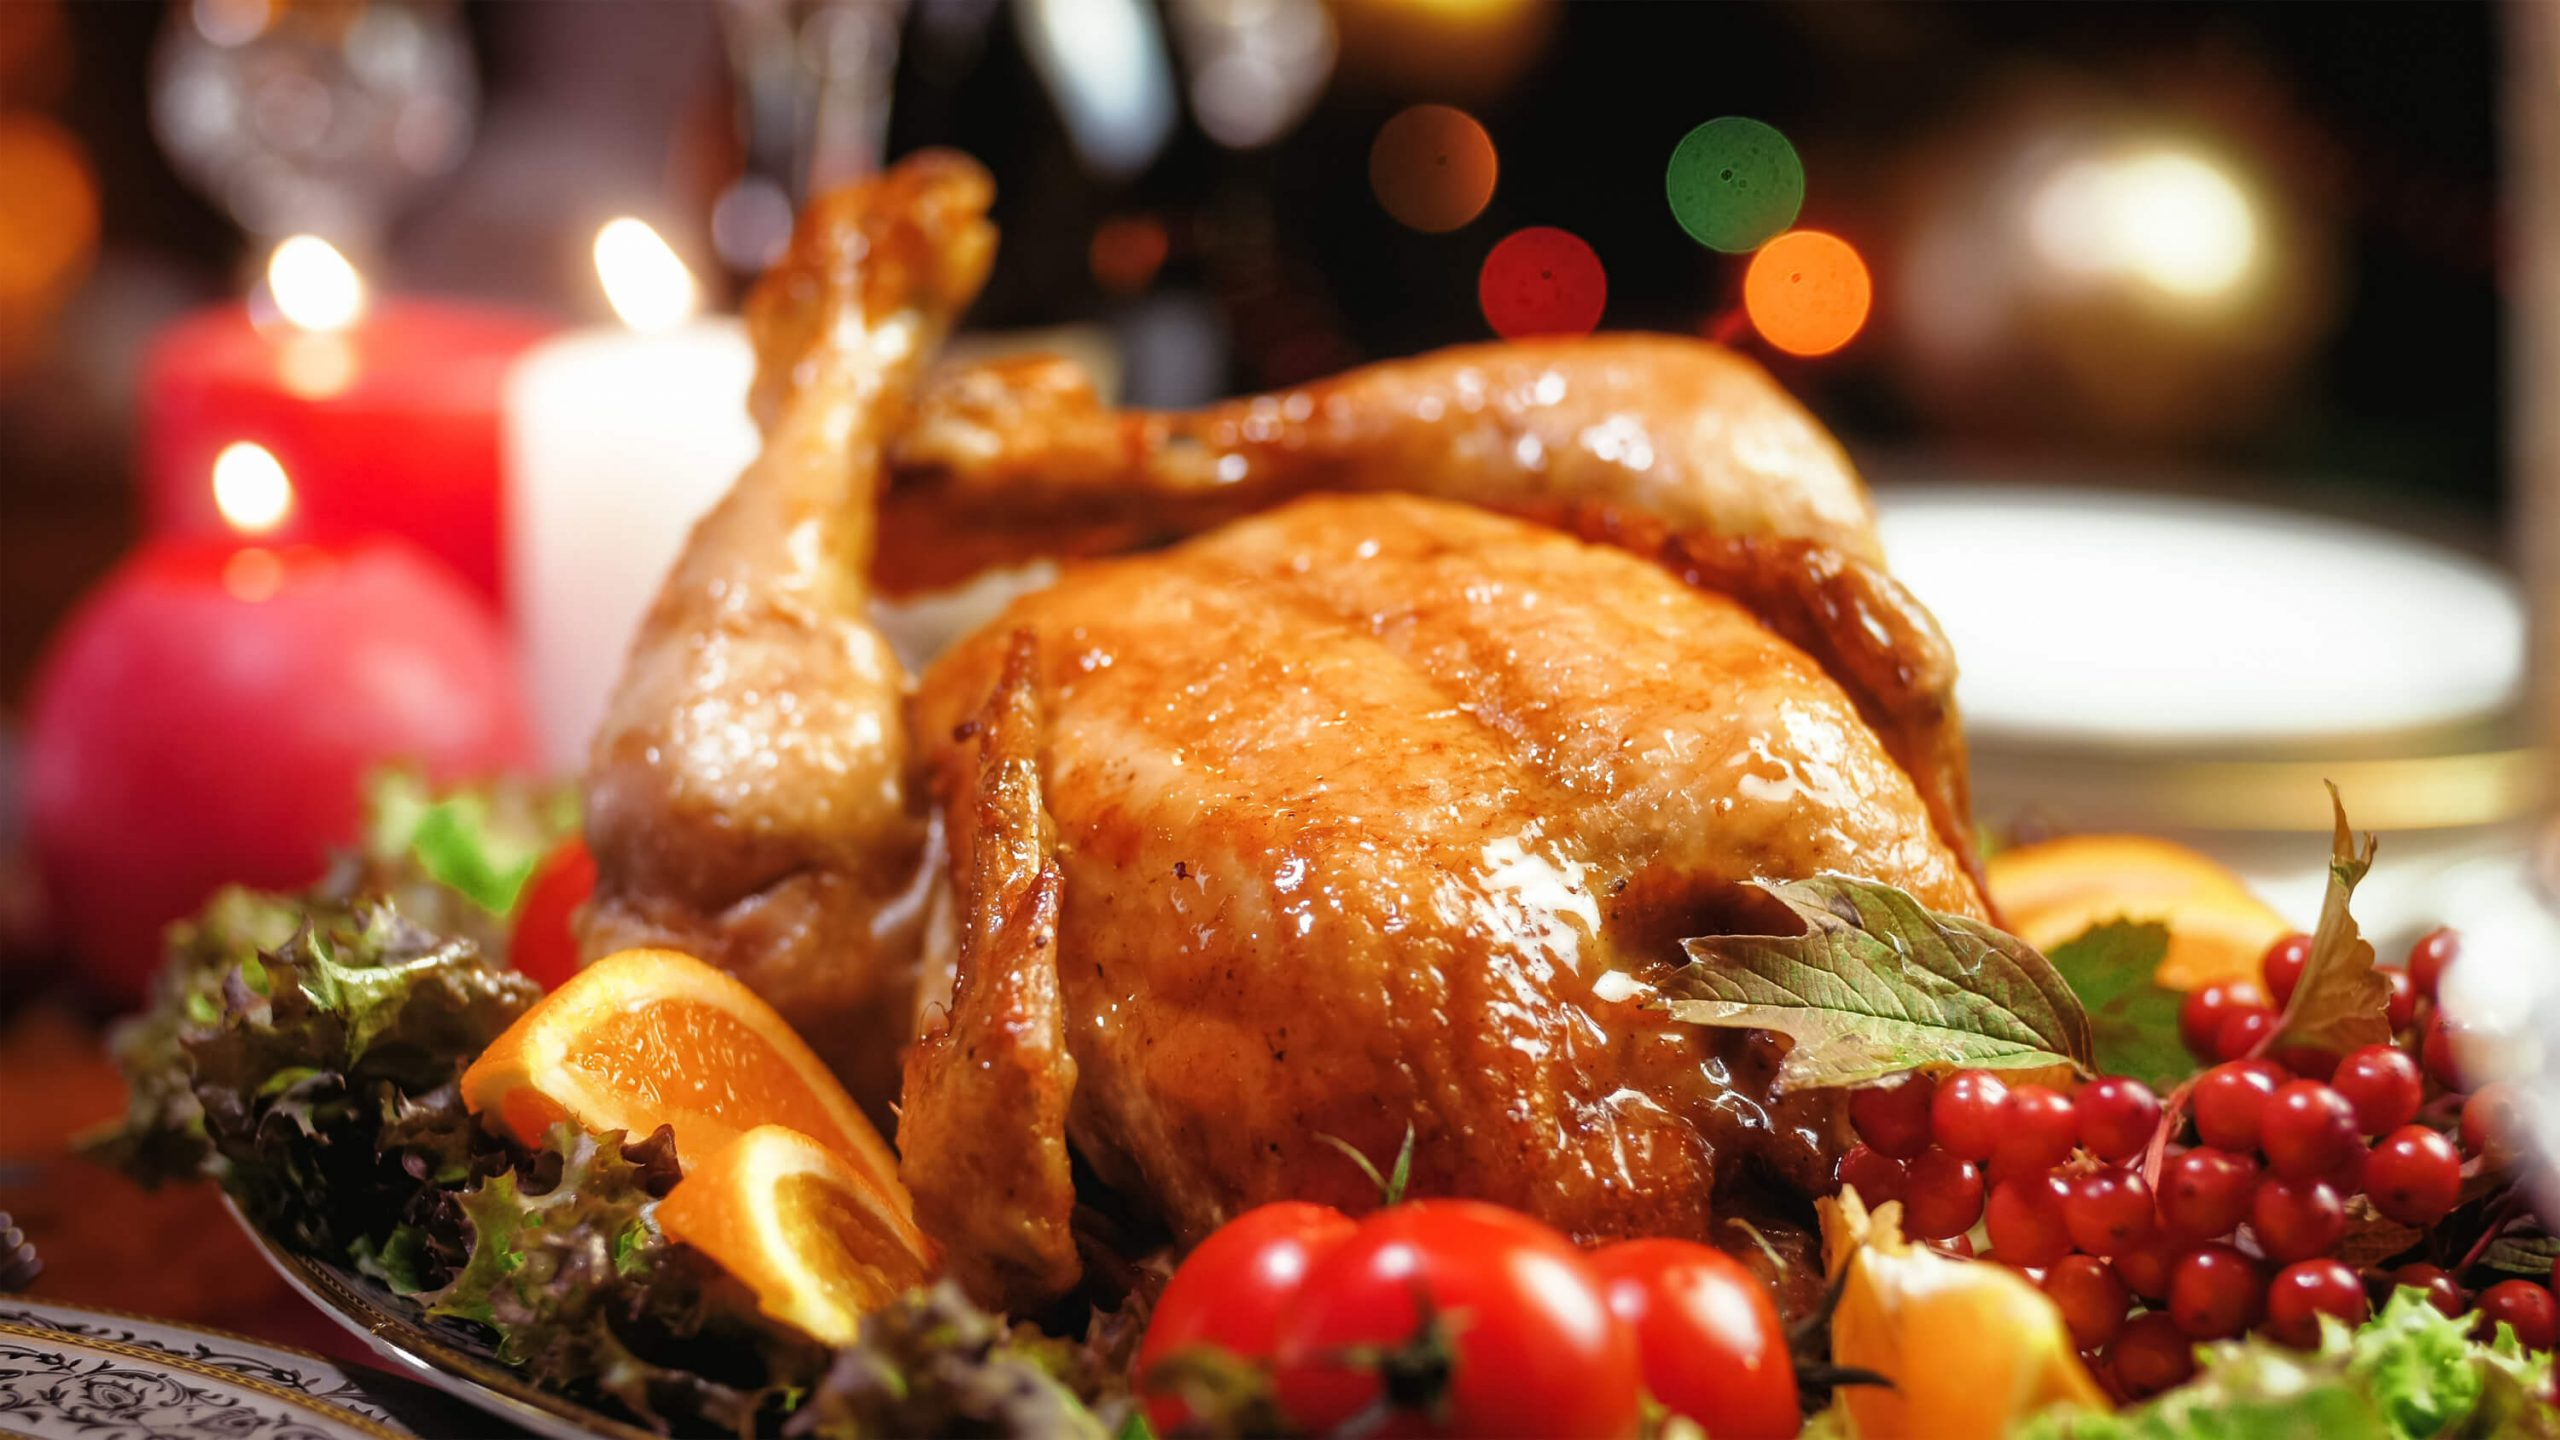 Celebrate Christmas in style this year at Barnham Broom